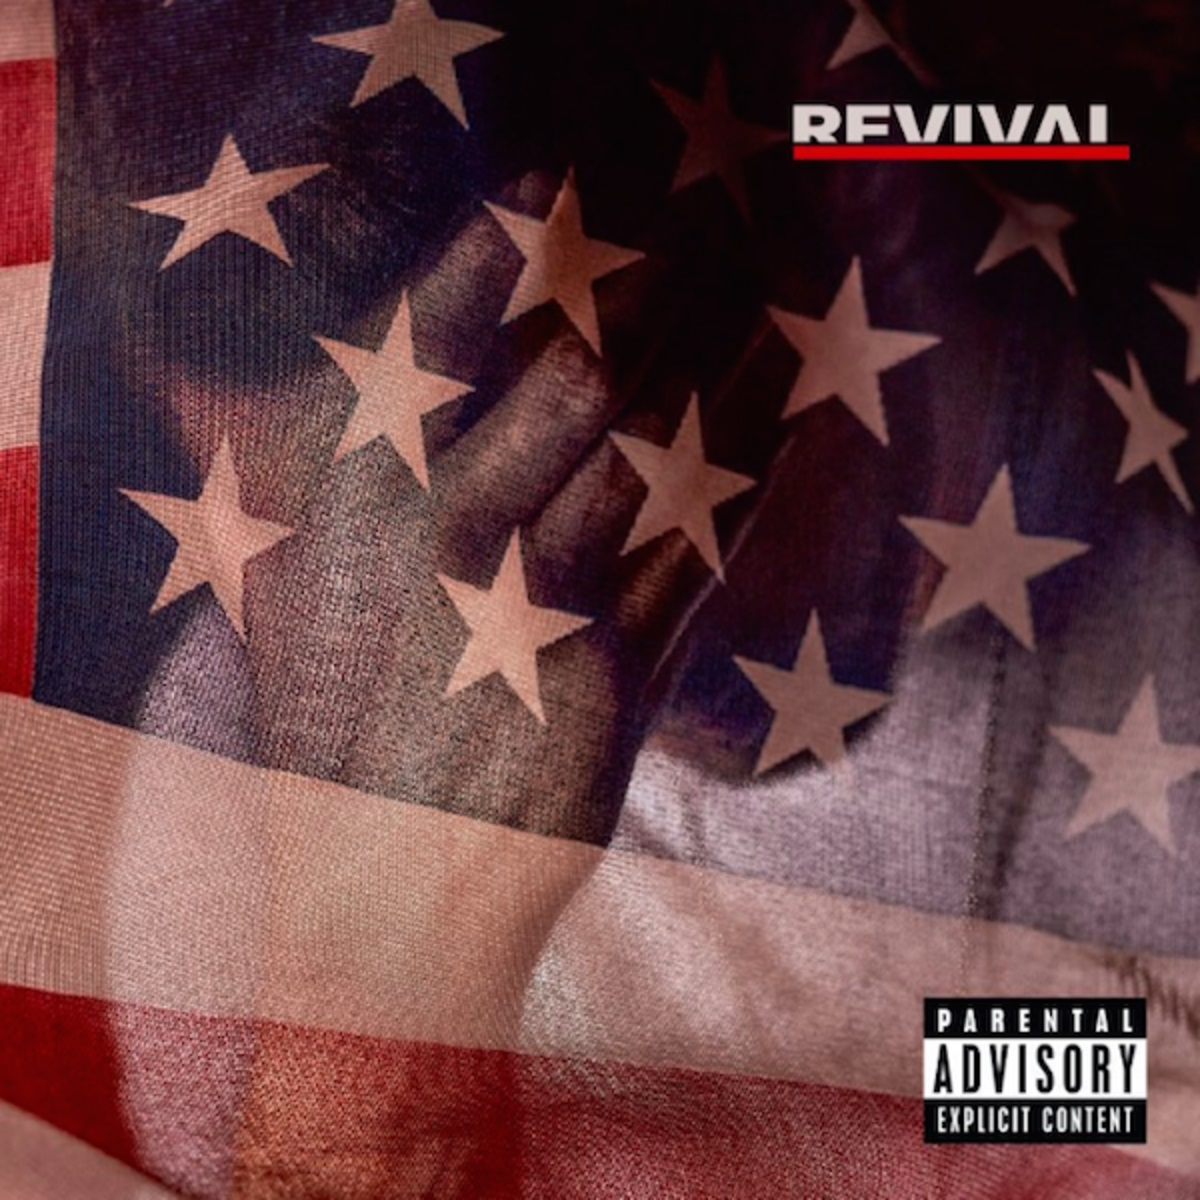 Eminem Fires Back at 'Revival' Critics With Remix